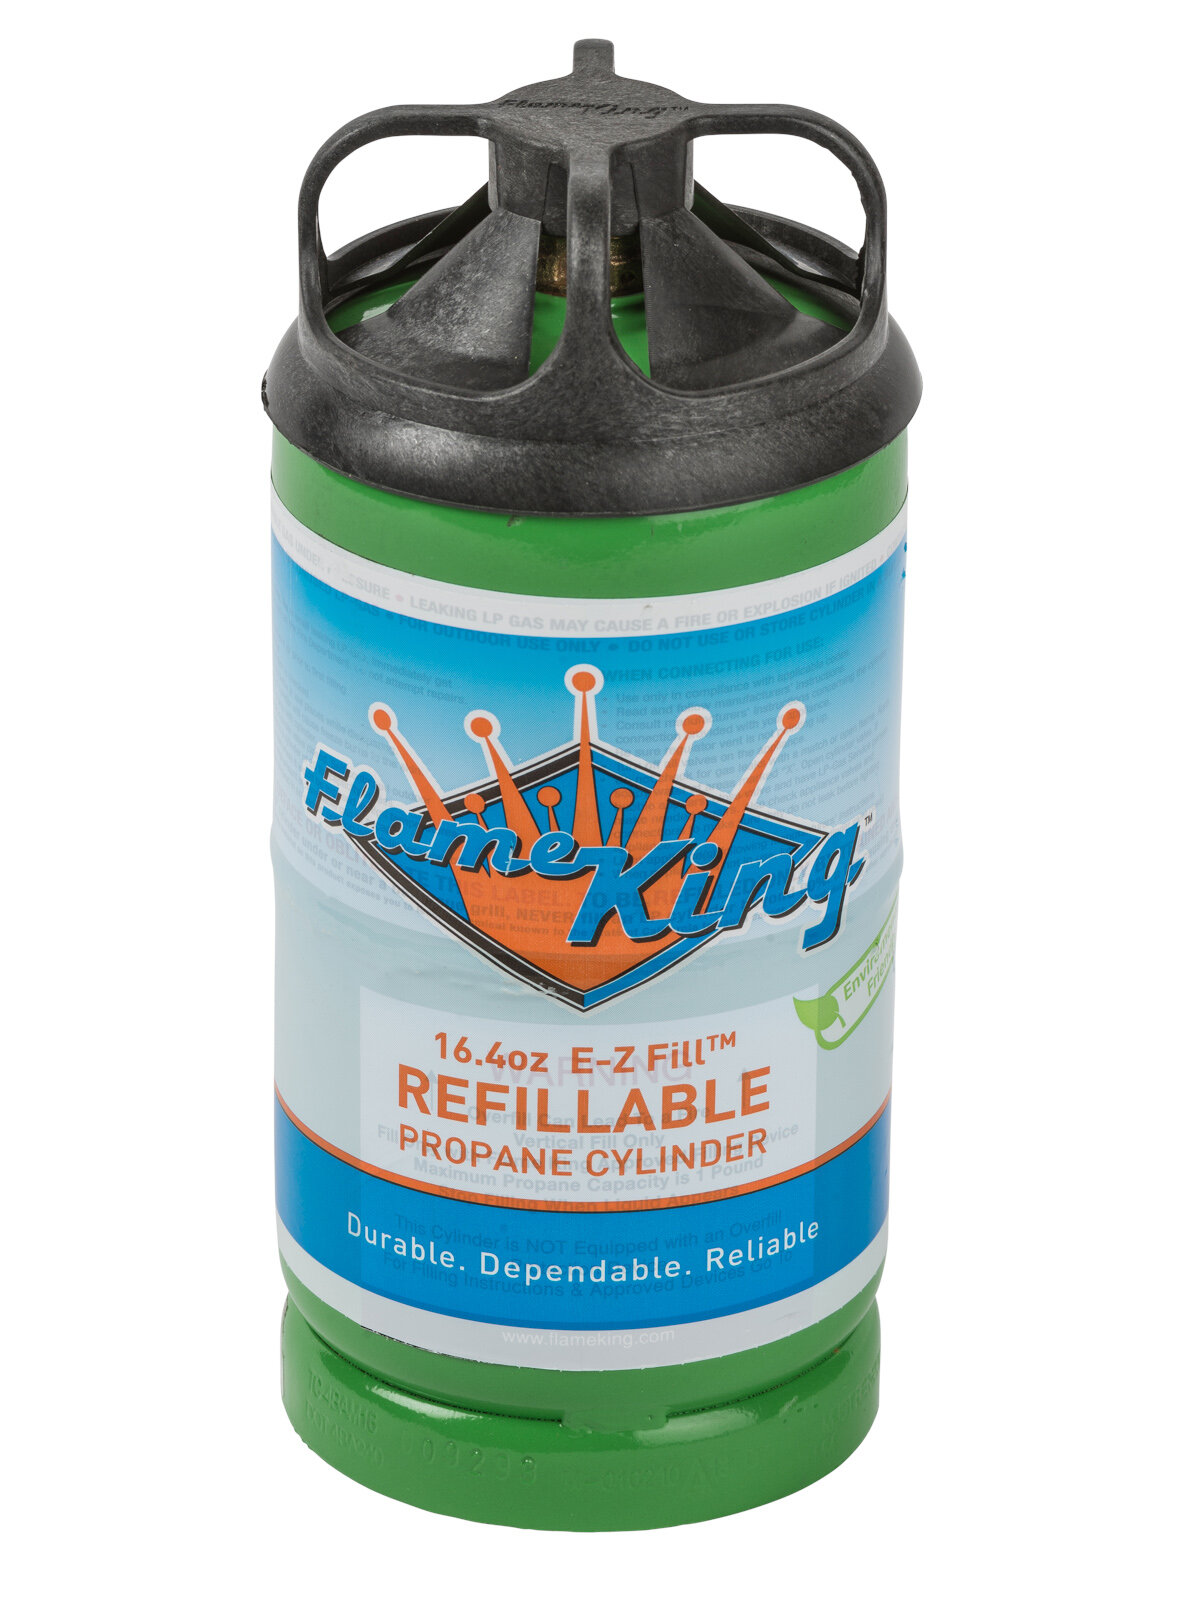 Twin Pack 2 20 LB Pound Steel Propane Tank BBQ Refillable Cylinder OPD Valve